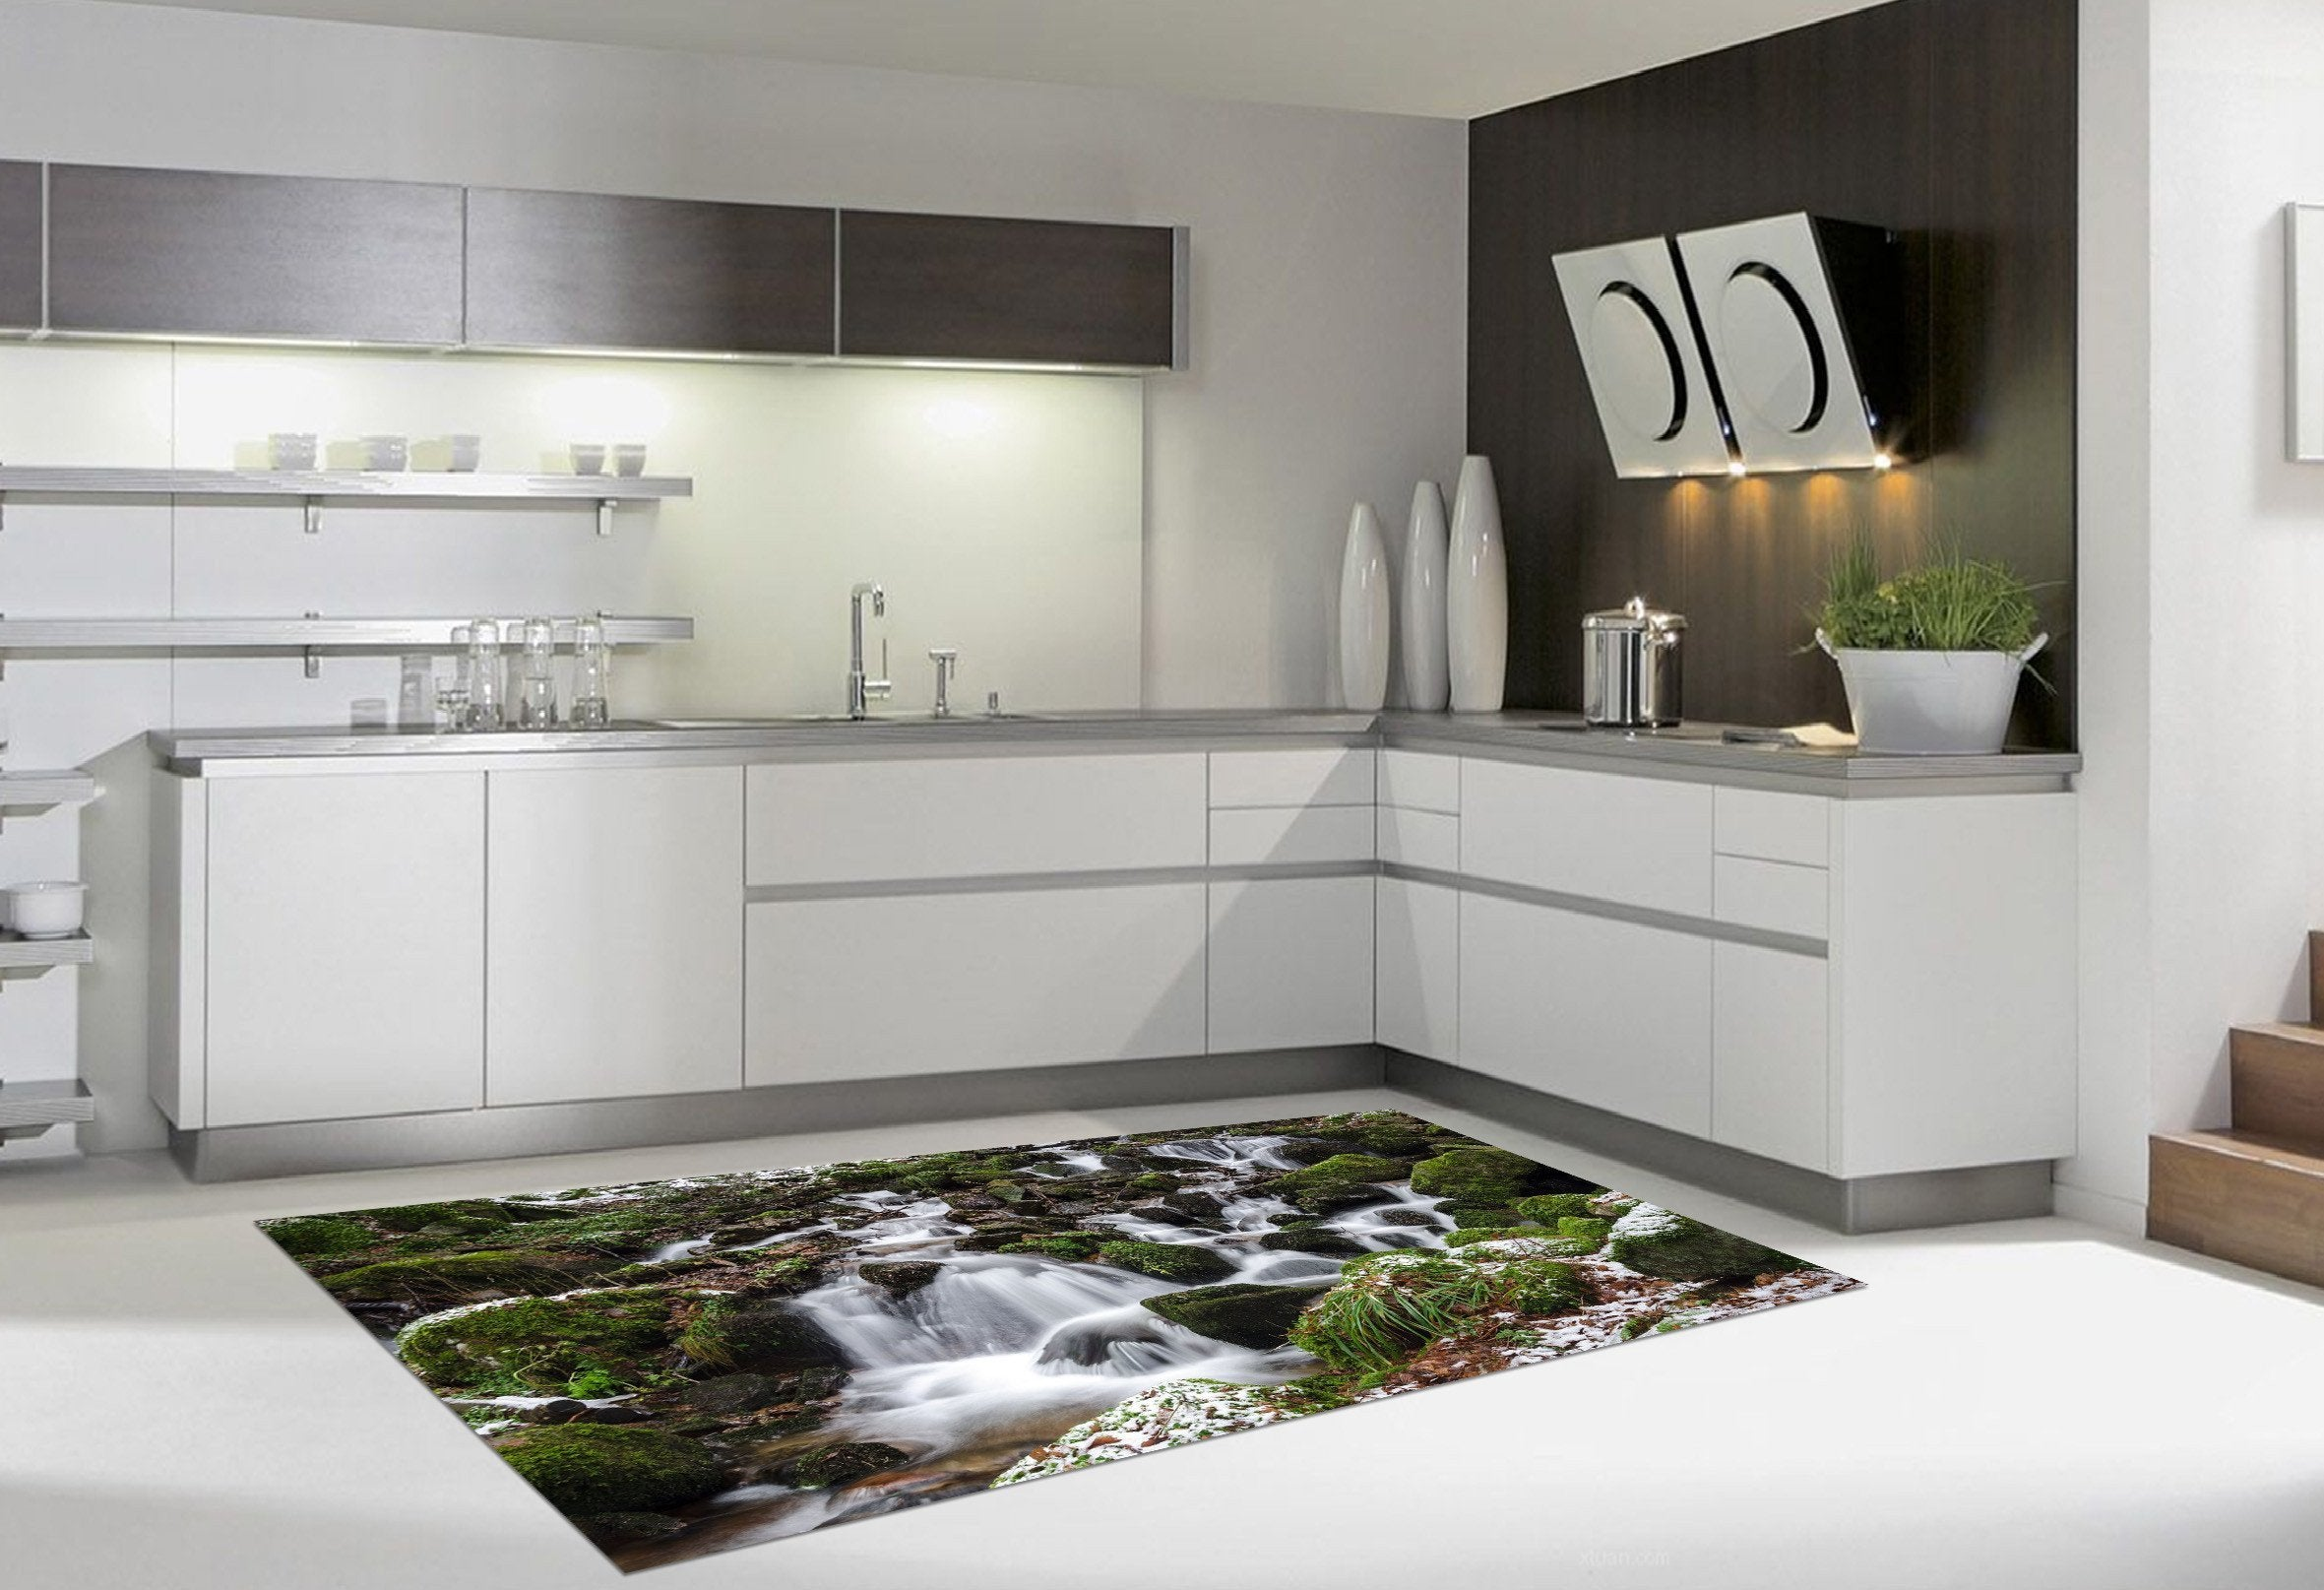 3D Stony Creeks Kitchen Mat Floor Mural Wallpaper AJ Wallpaper